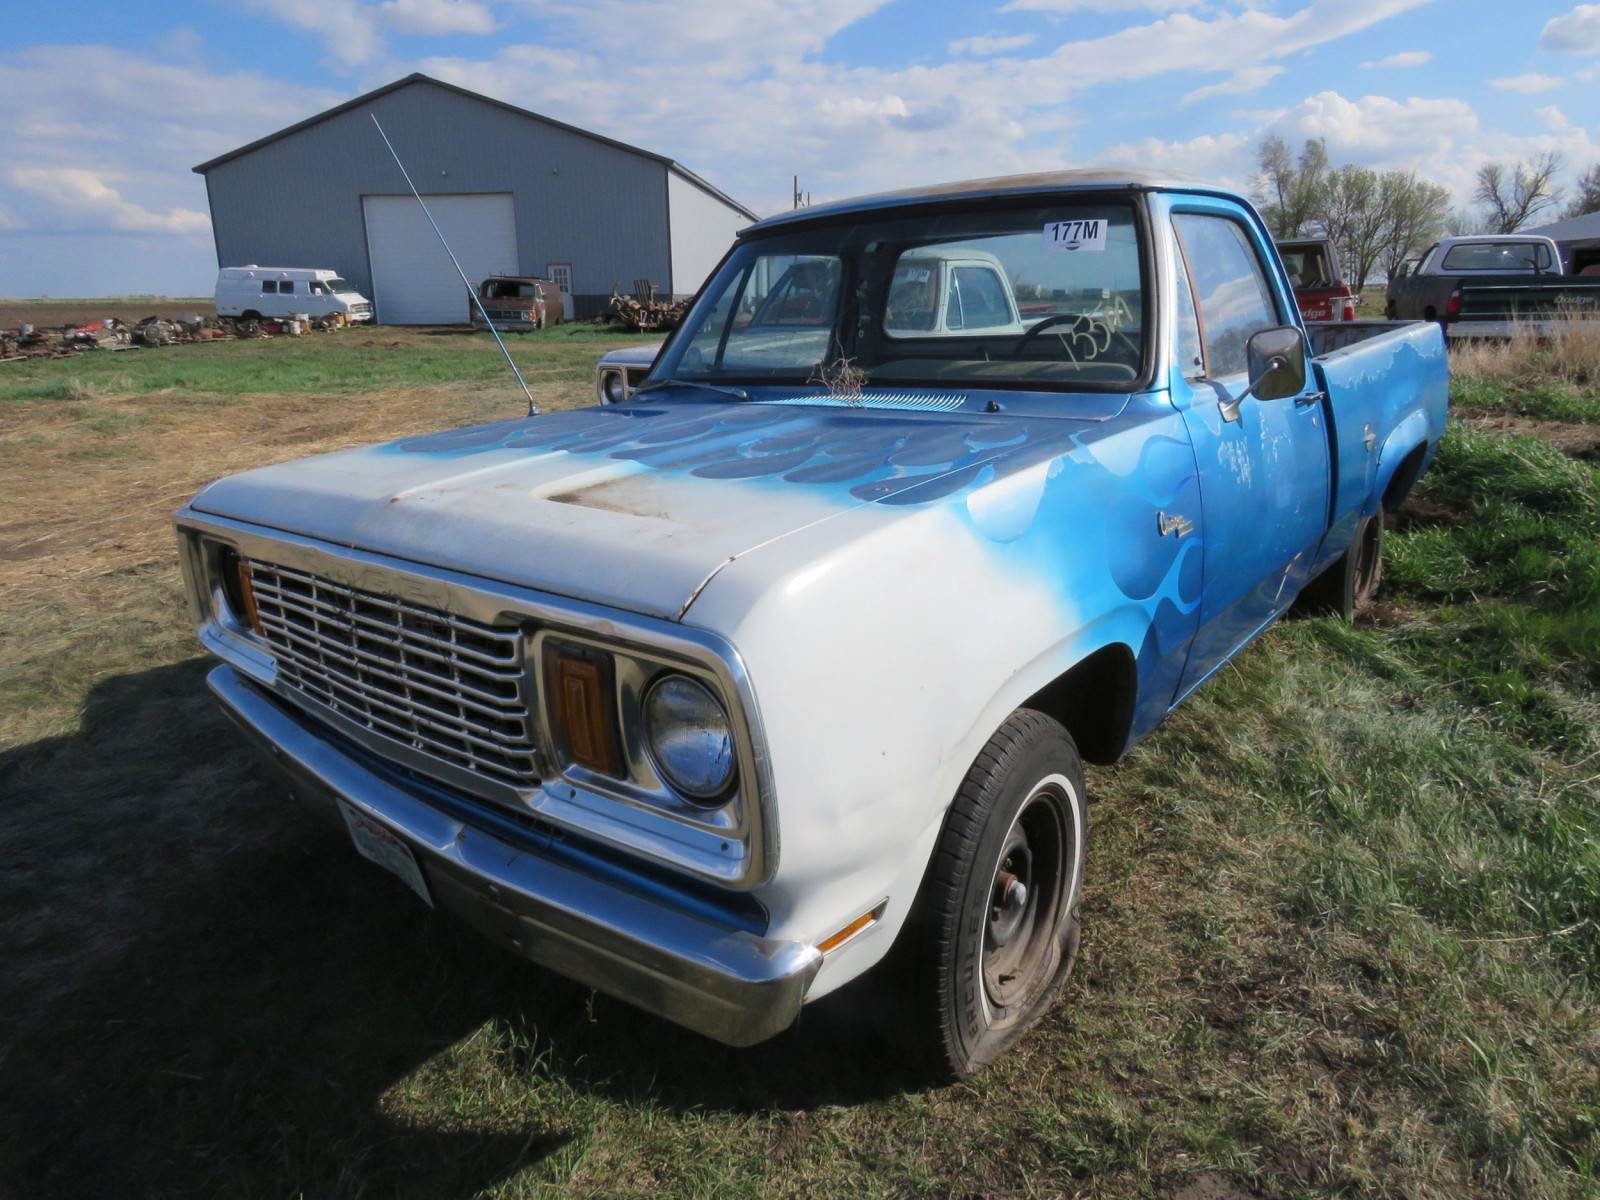 1978 Dodge Custom Shortbox Pickup - Image 1